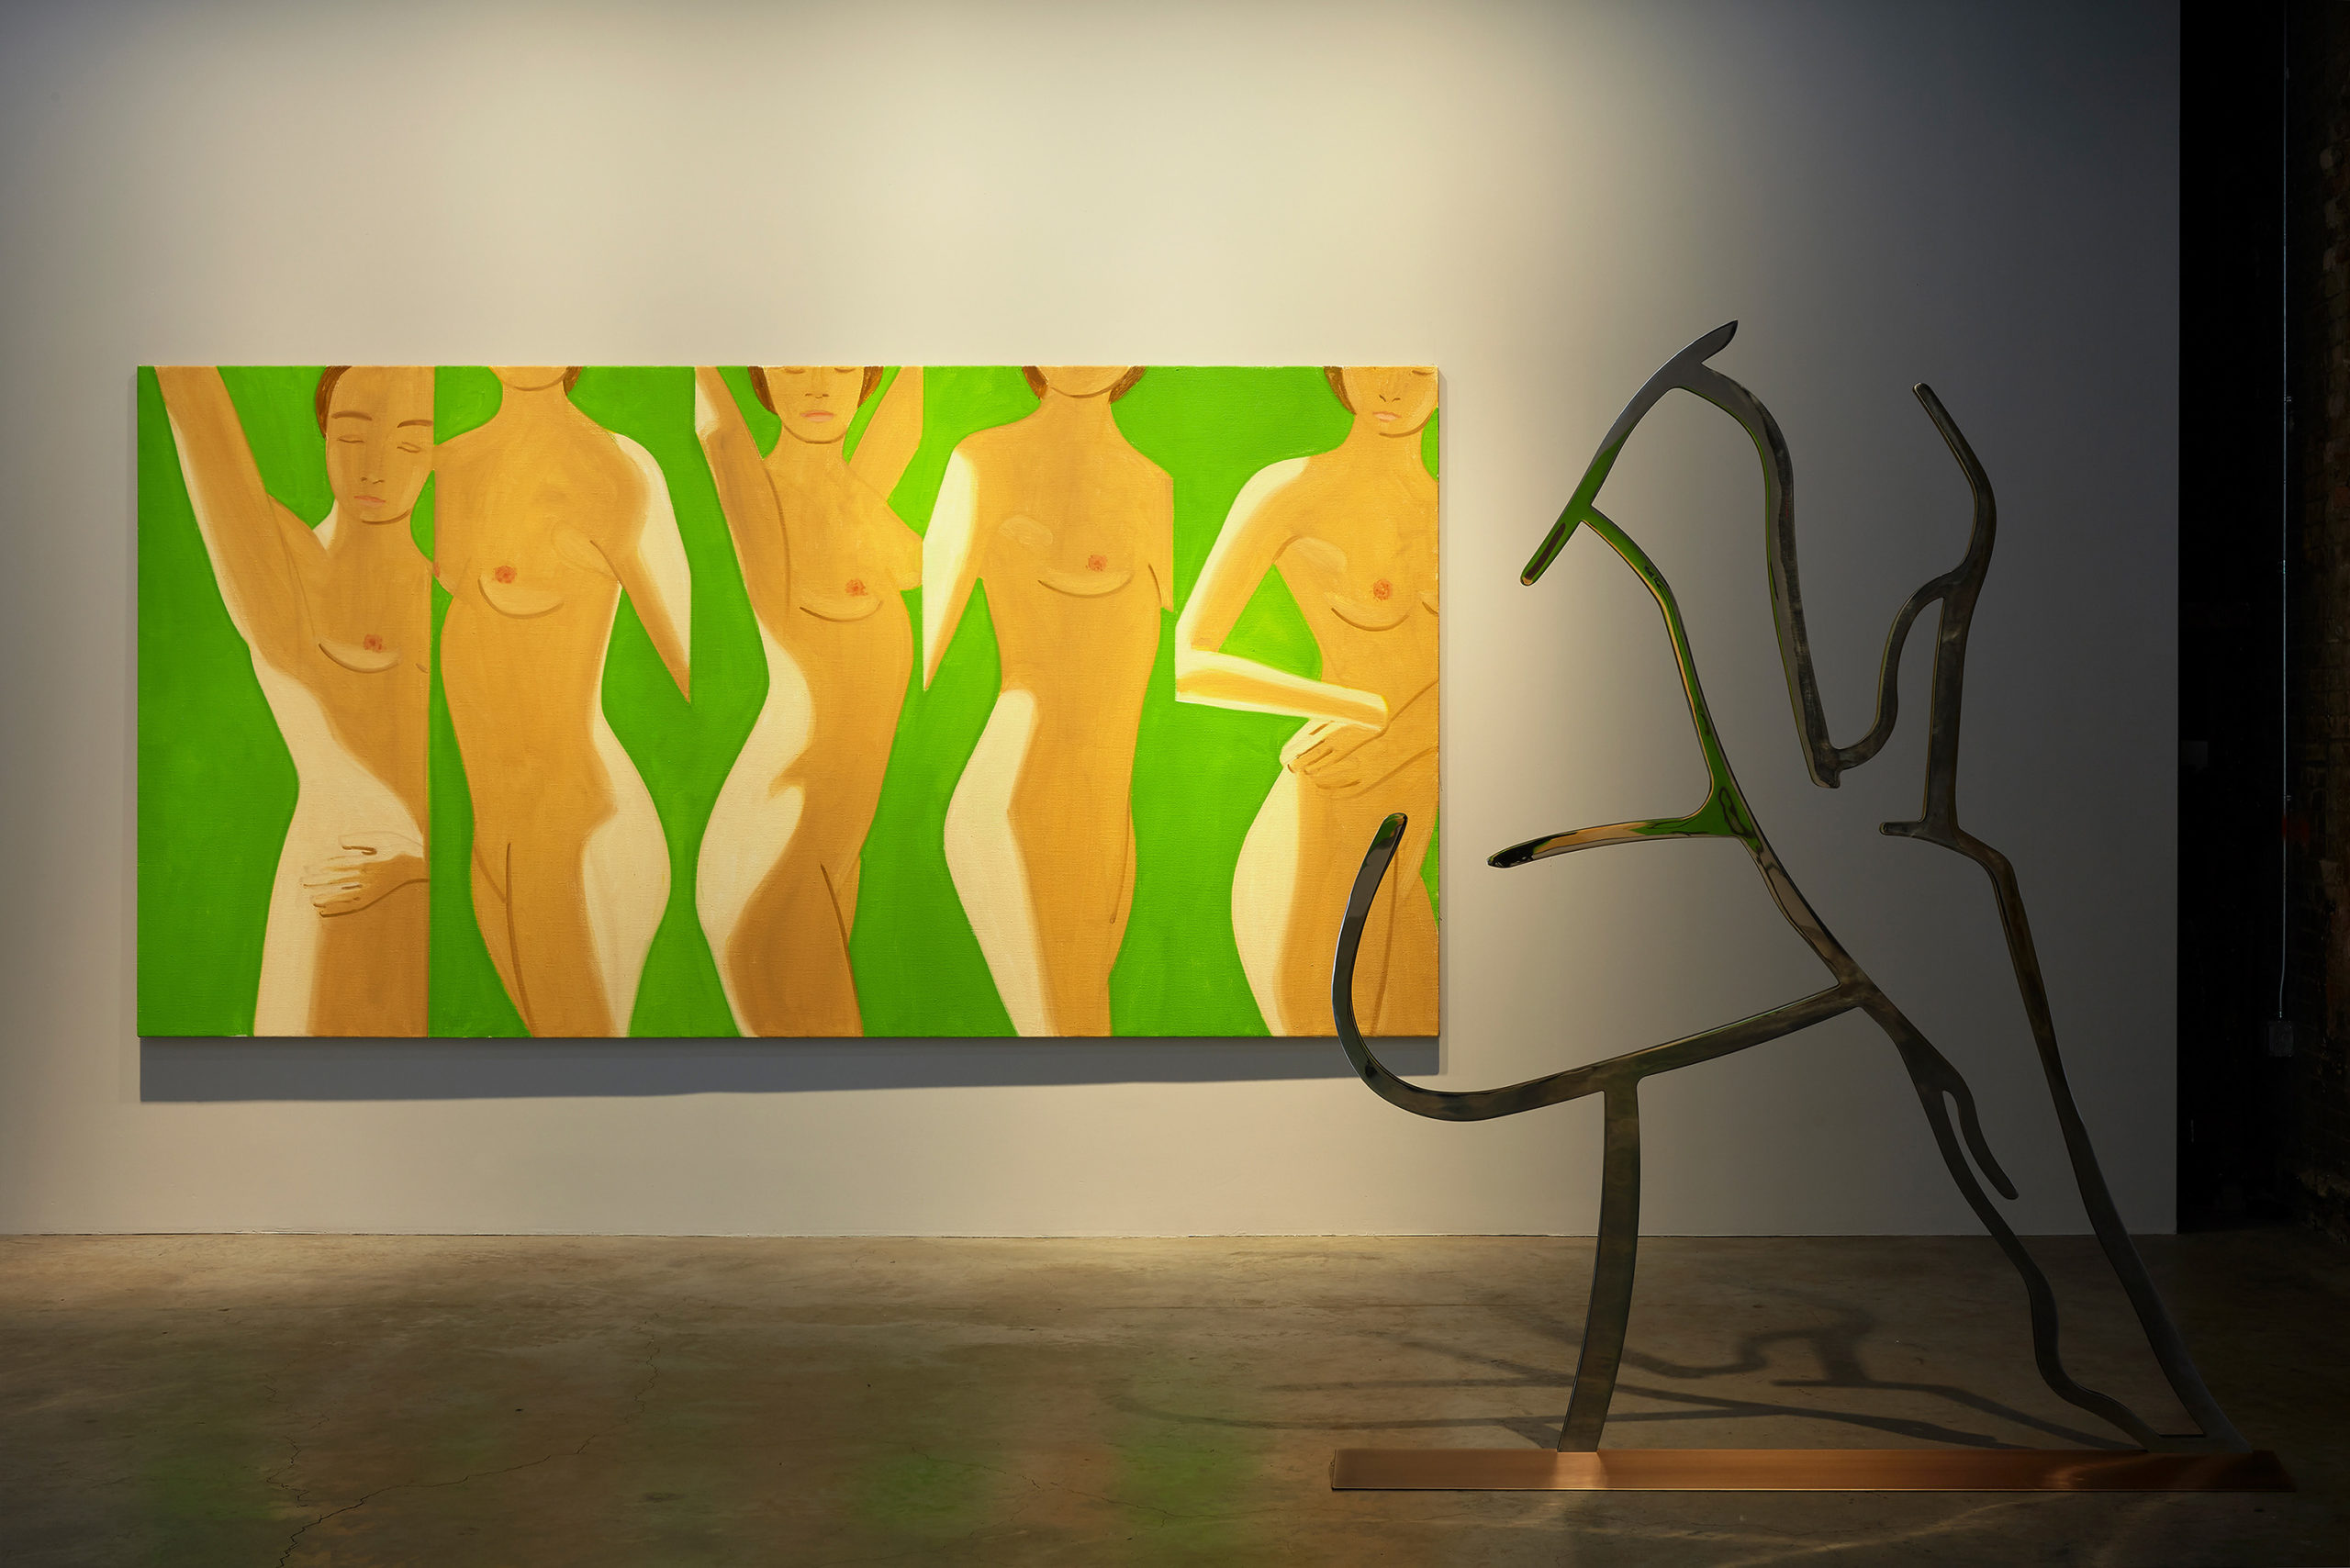 Alex Katz Dancer 1 (Outline) installation at Gavin Brown